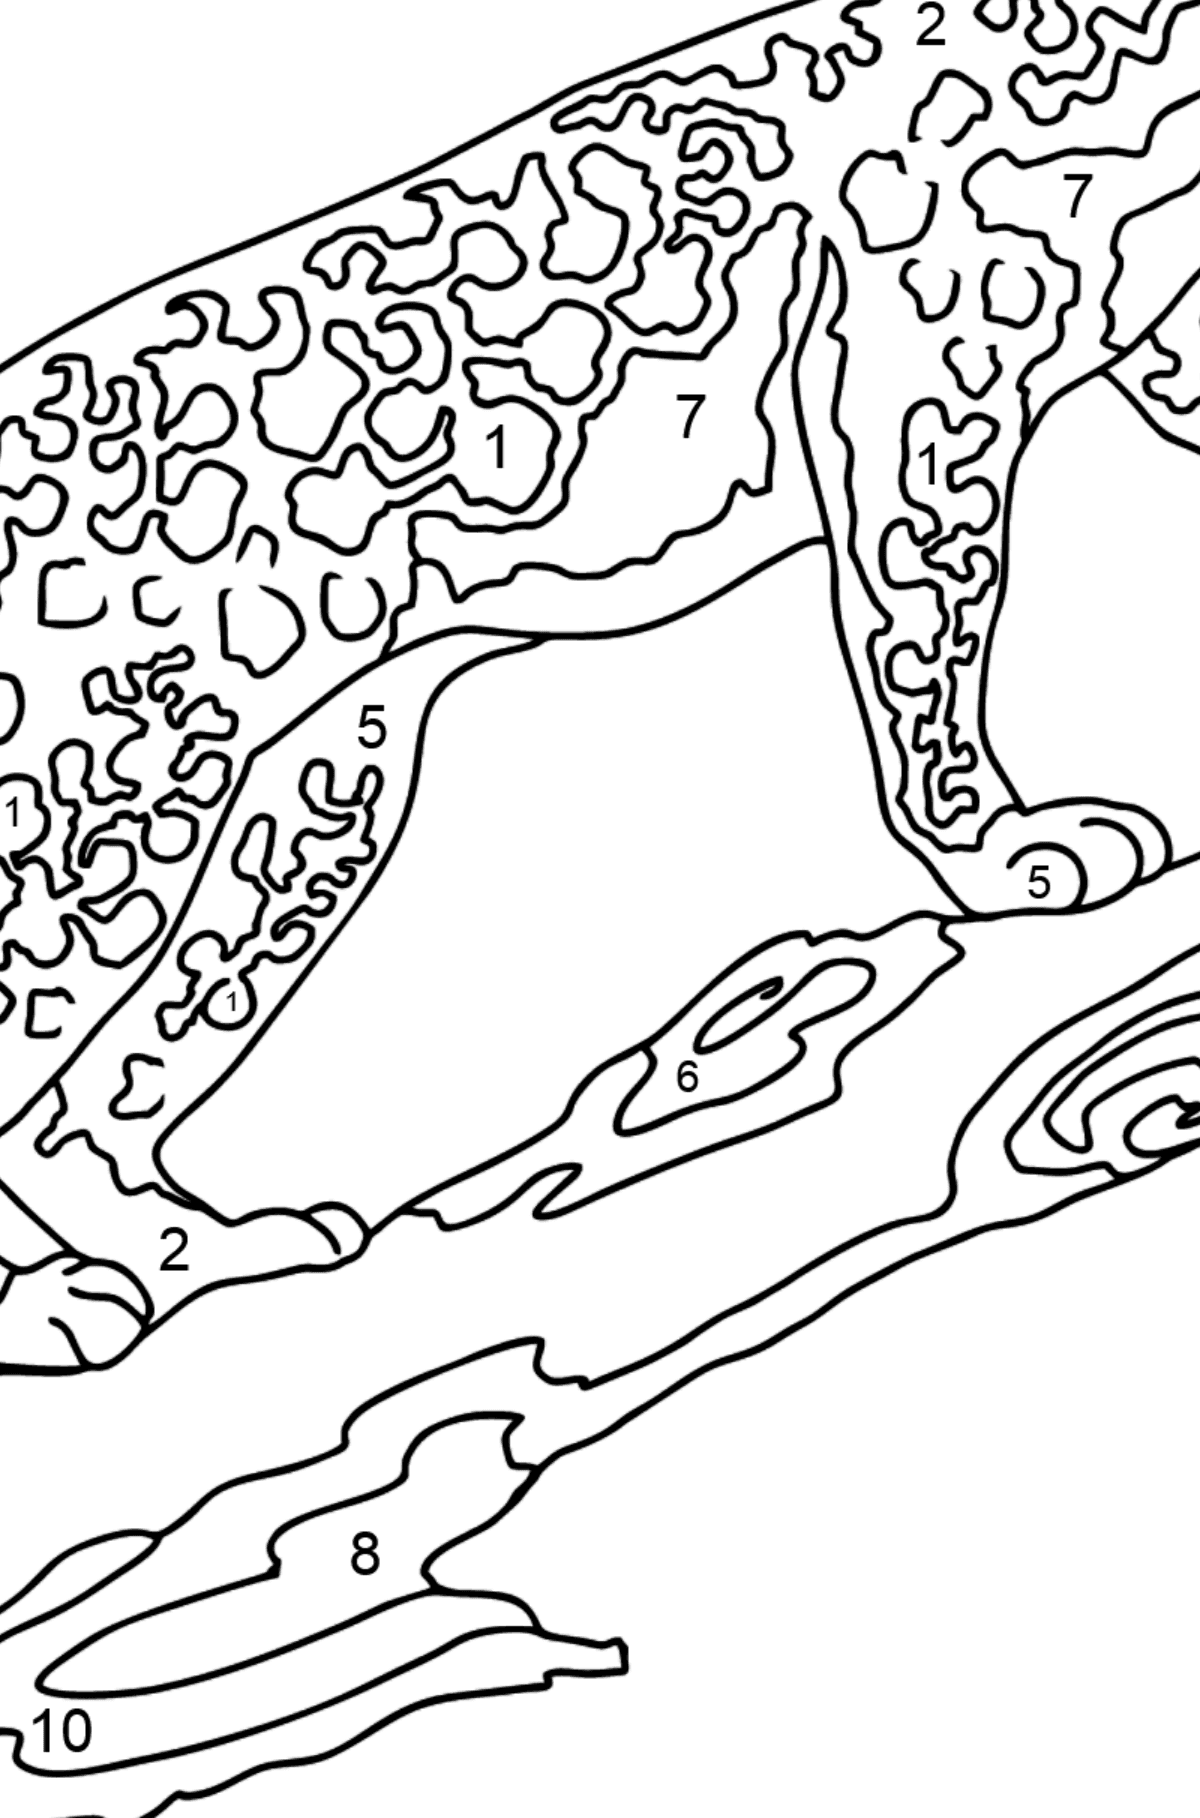 Coloring Page - A Leopard on a Branch - Coloring by Numbers for Kids